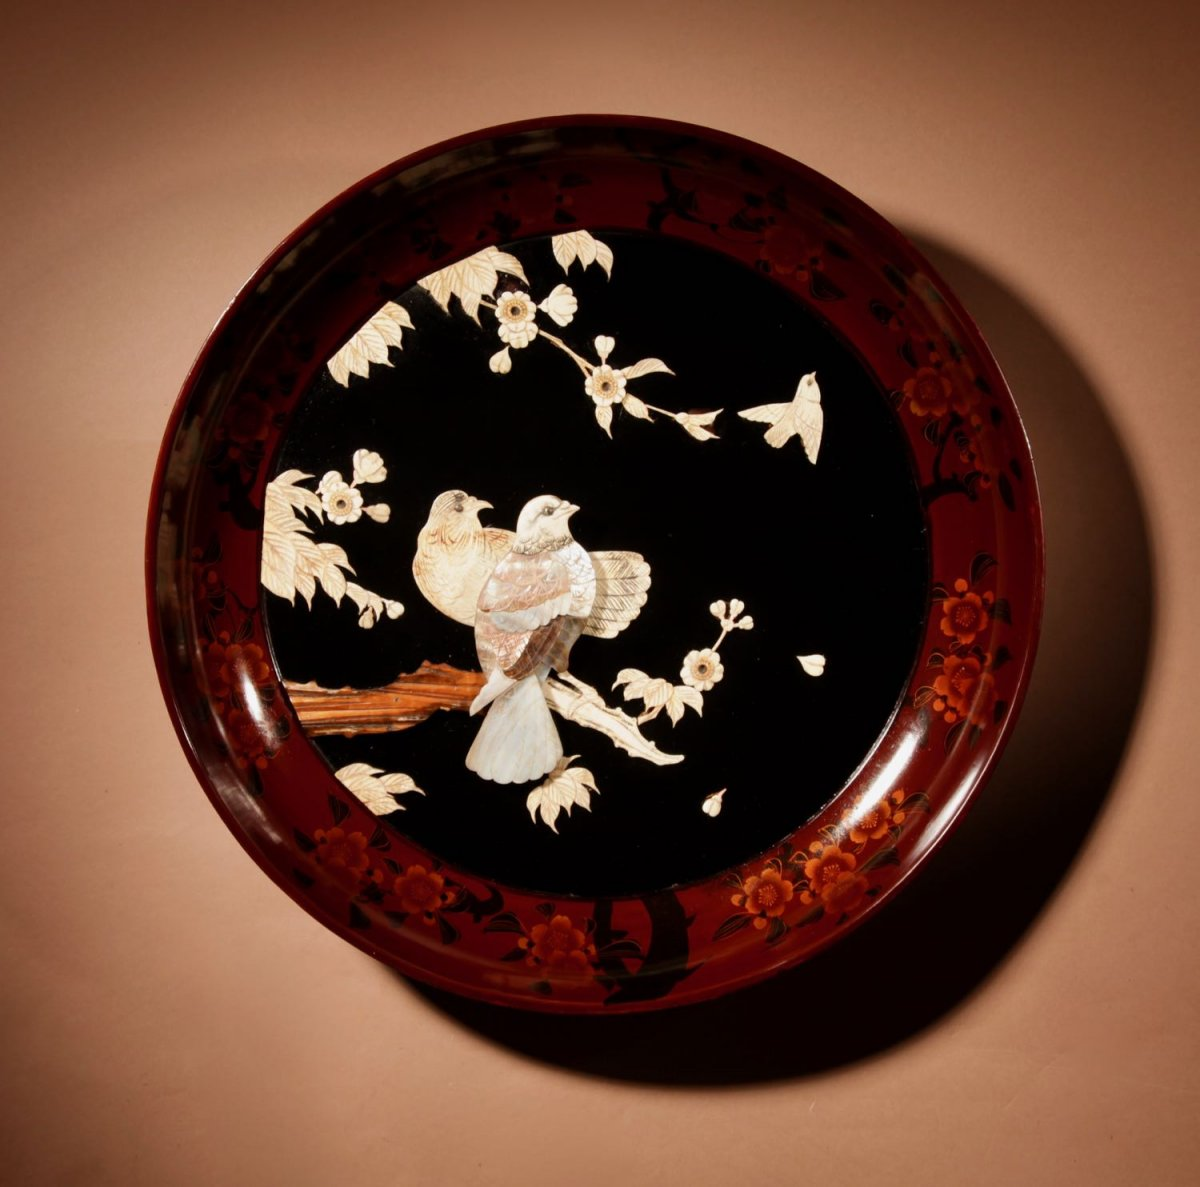 A Very Decorative Japanese Lacquered Charger. Meiji Period (1868-1912)